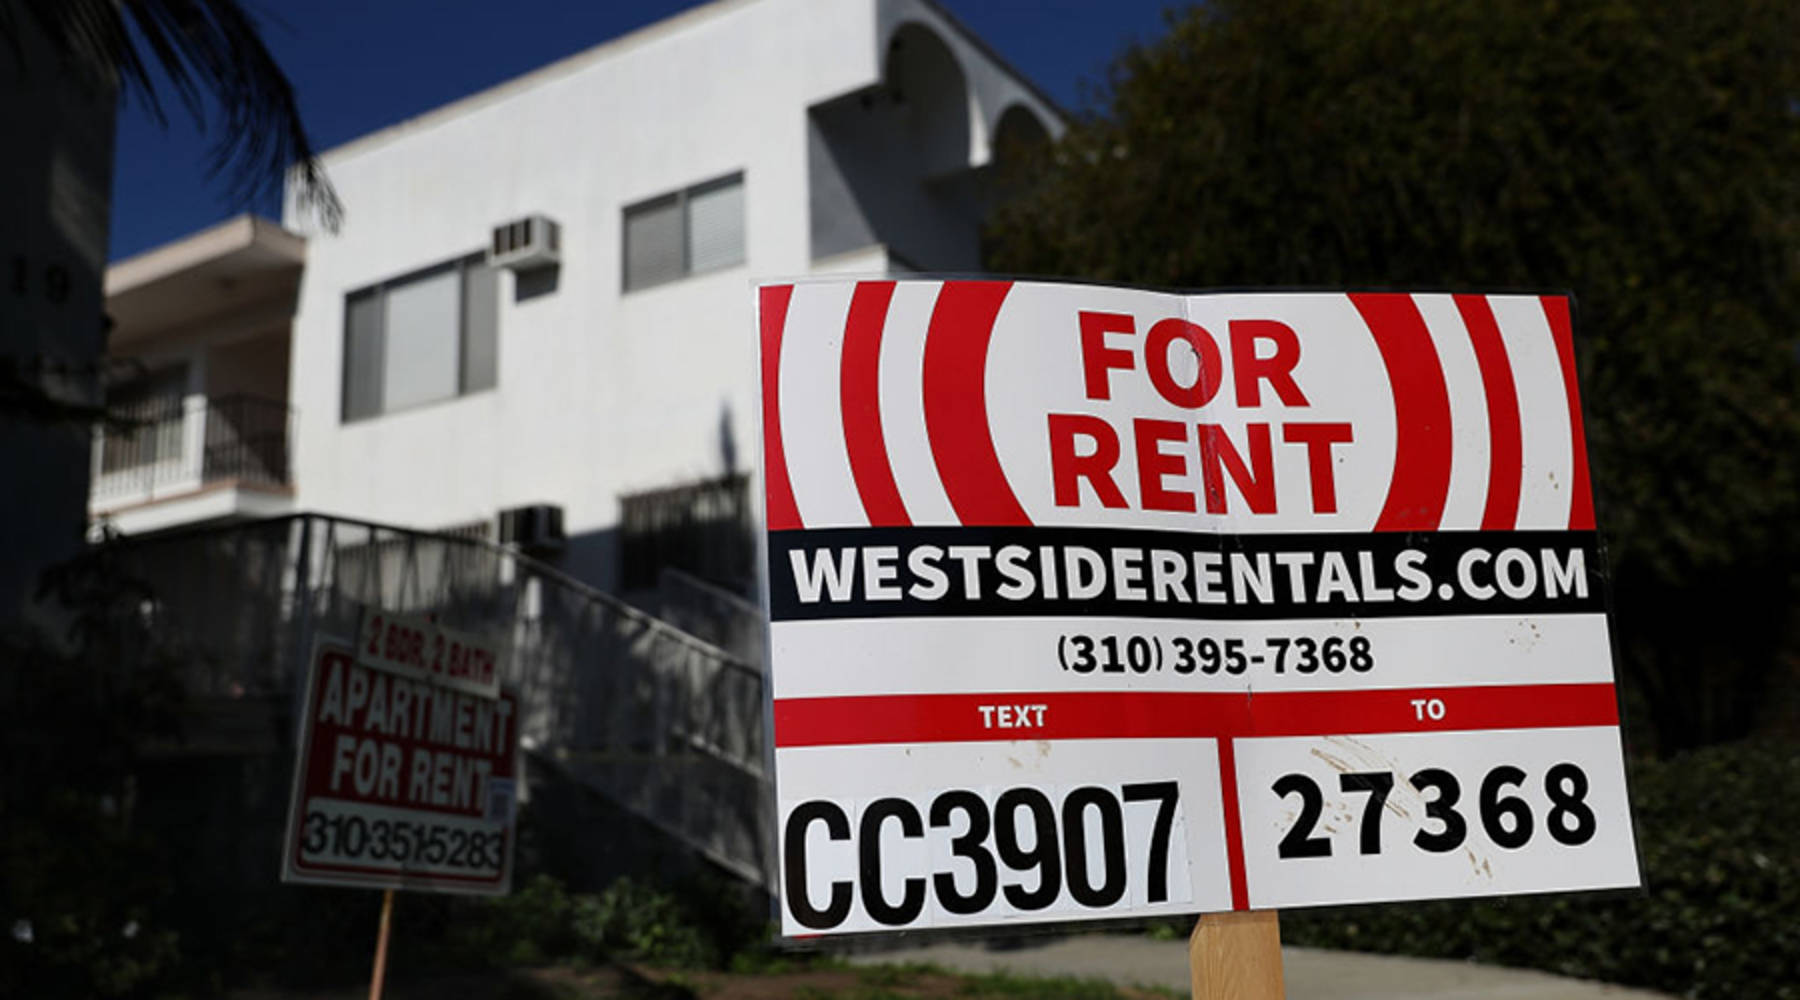 It's a long wait for Section 8 housing in U S  cities - Marketplace